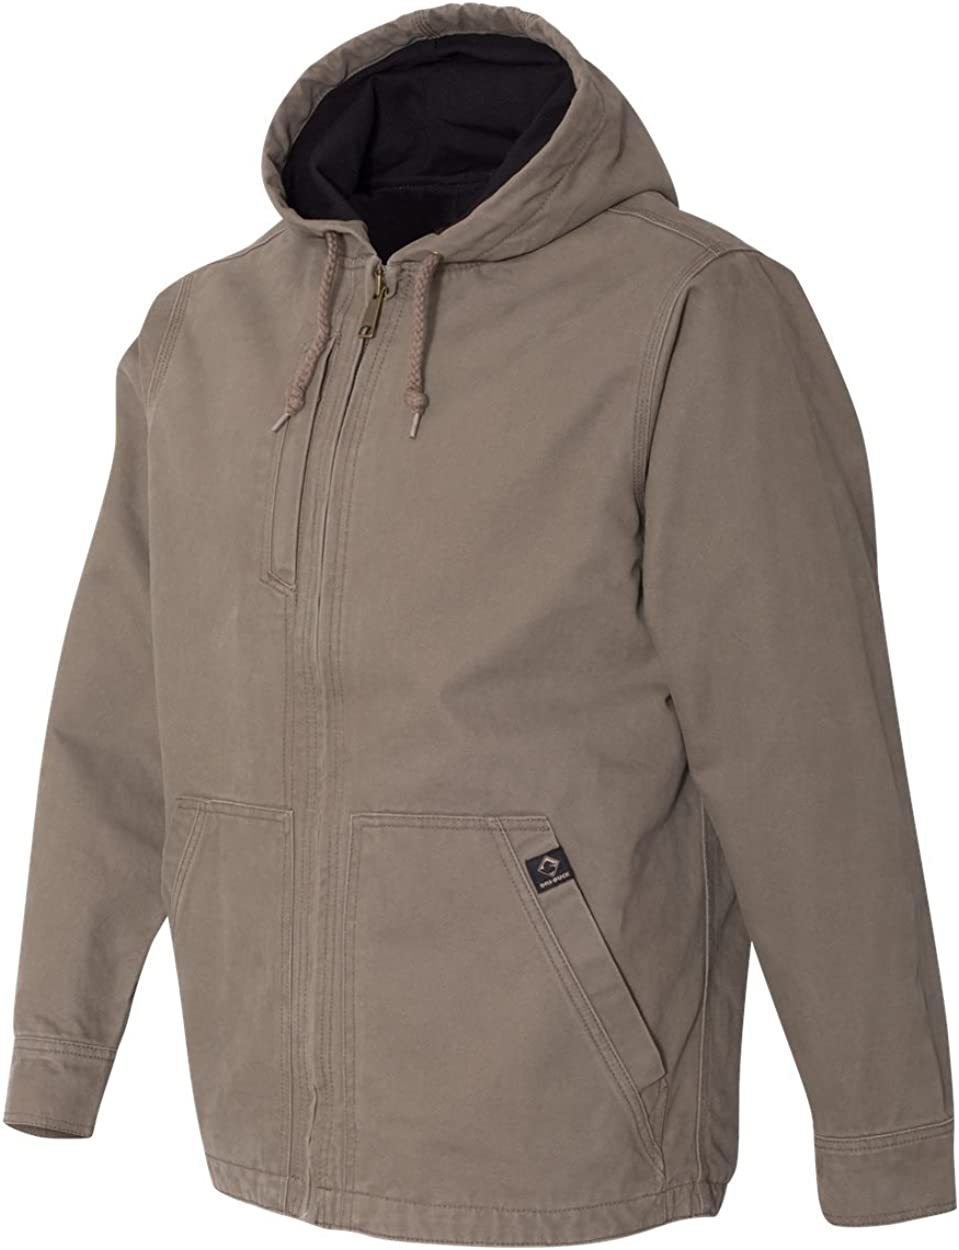 DRI Duck Men's 5090 / 5090T Laredo Boulder Cloth Canvas Jacket with Thermal Lining